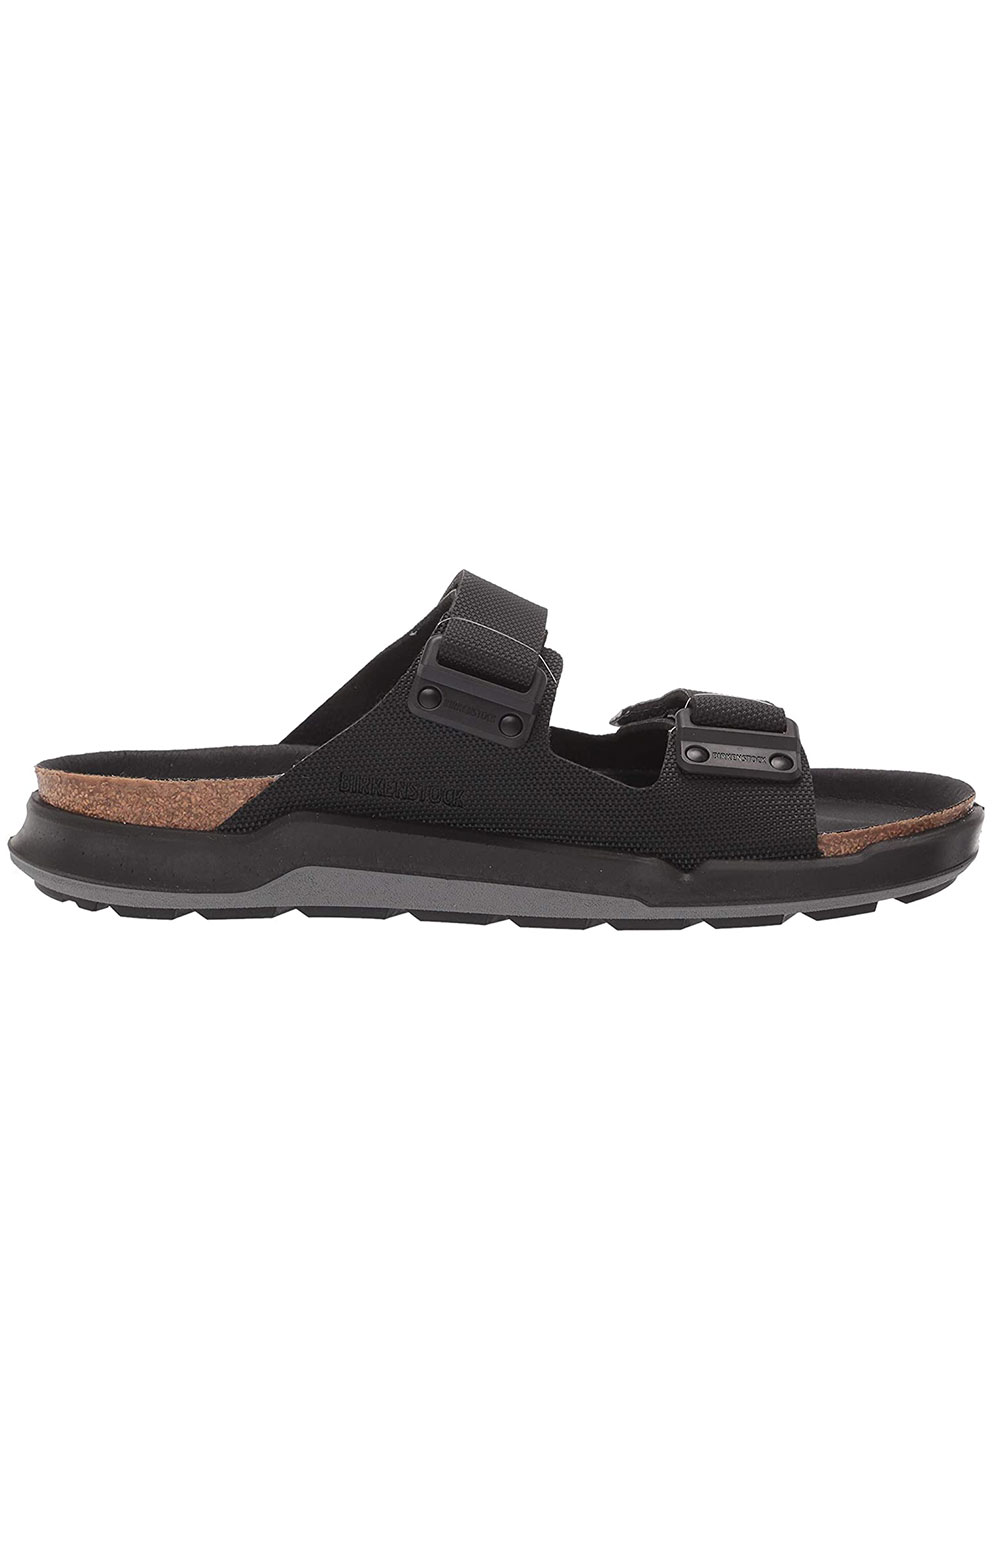 (1013755) Atacama Sandals - Future Black 4